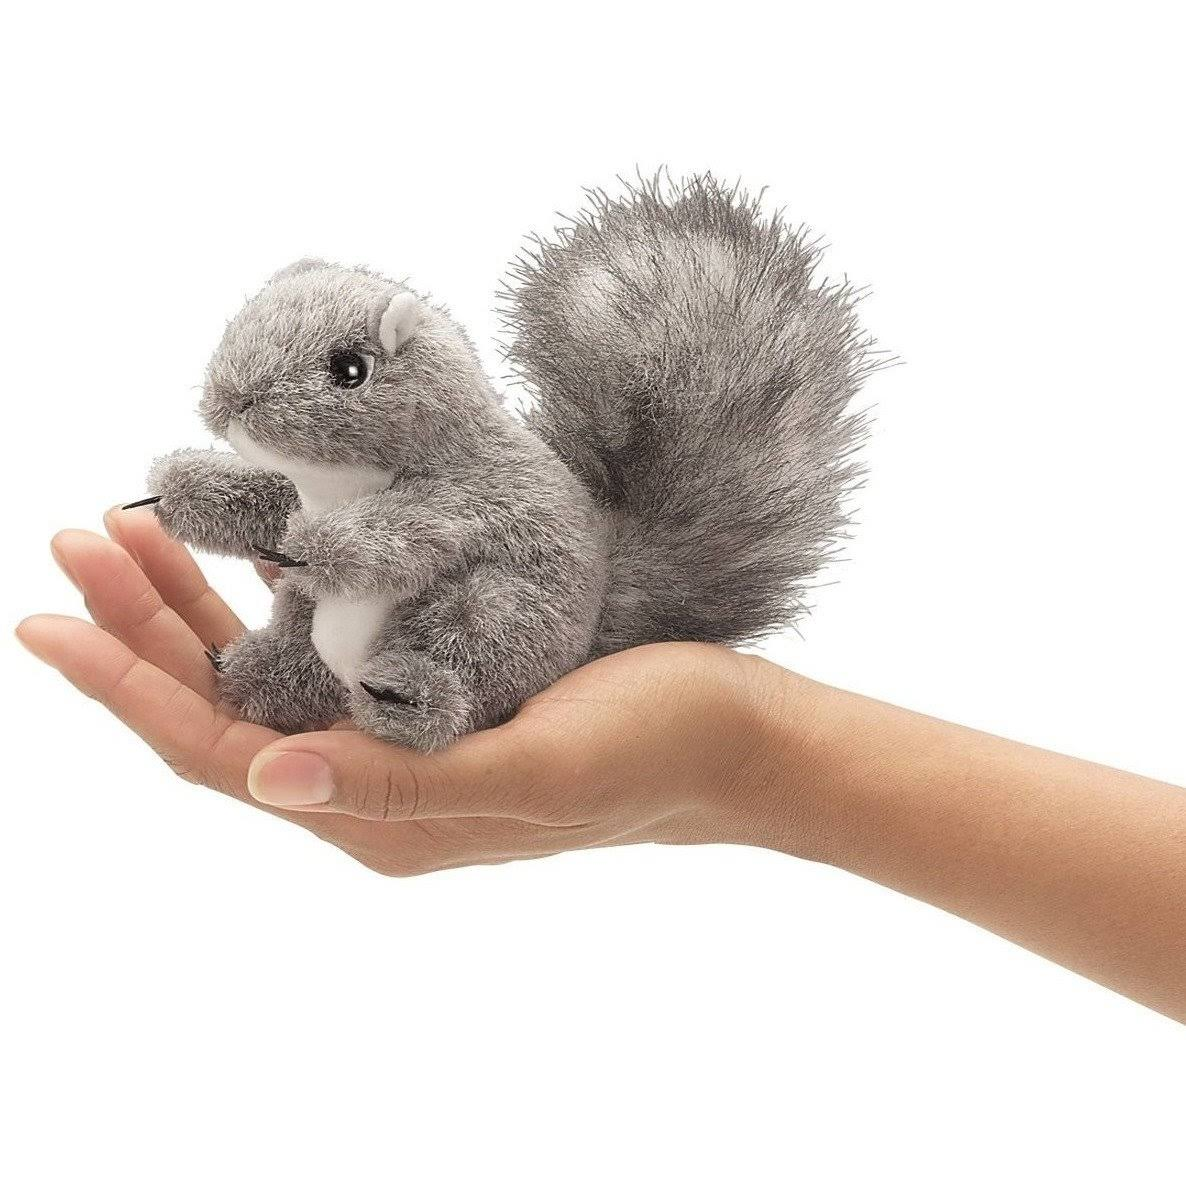 Folkmanis Mini Squirrel Finger Puppet - Gray